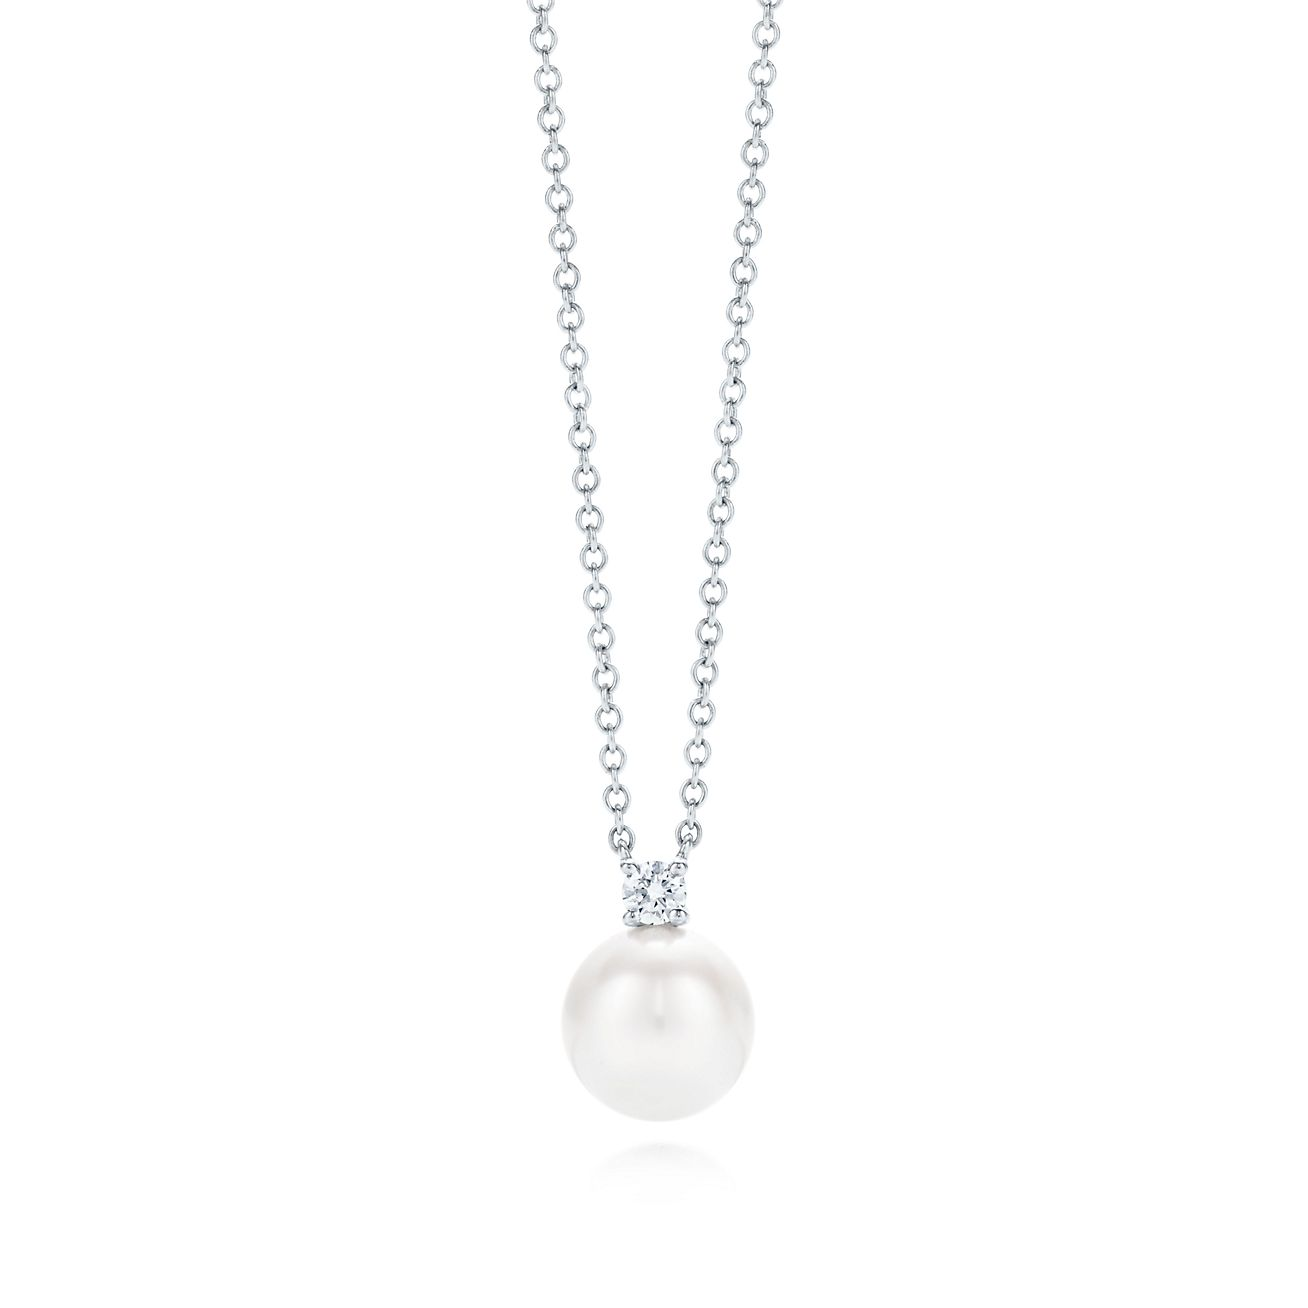 in fit hei diamonds ed jewelry constrain wid tiffany pearl necklaces fmt pendants id gold with pendant sea south